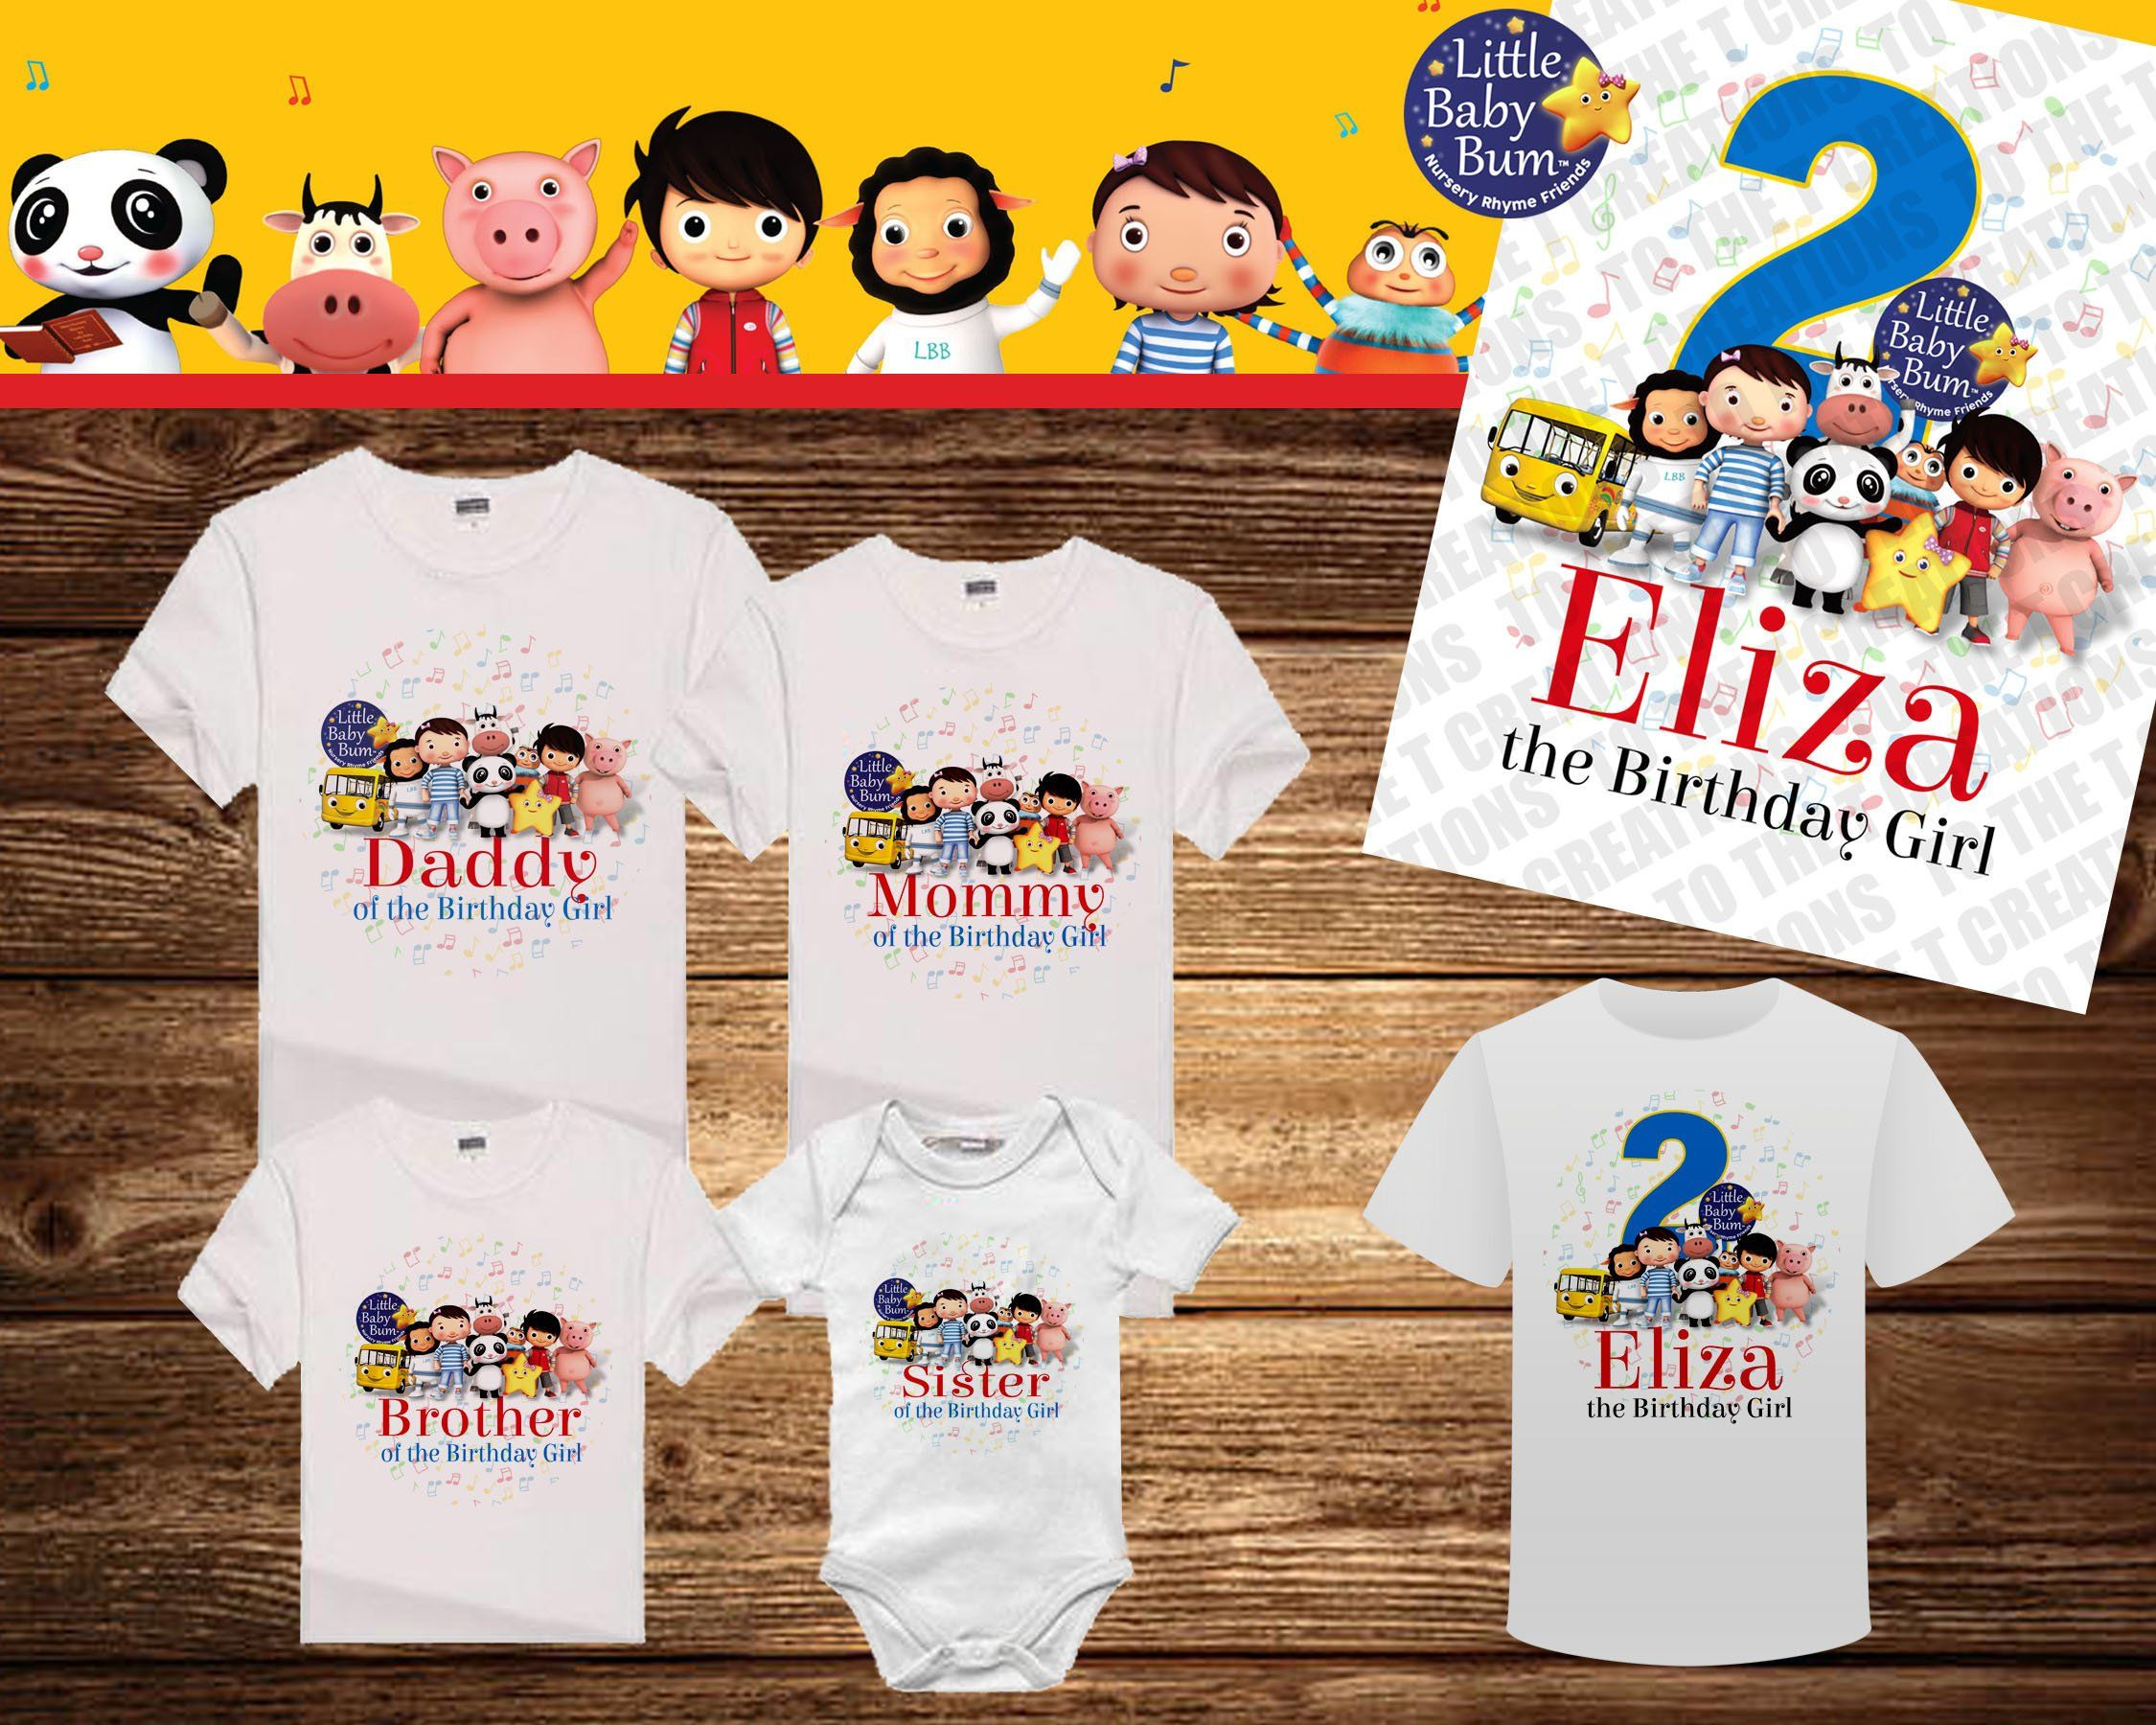 Little Baby Bum Personalized Birthday Shirt For Any Family Member Or Other By TotheTCreations On Etsy